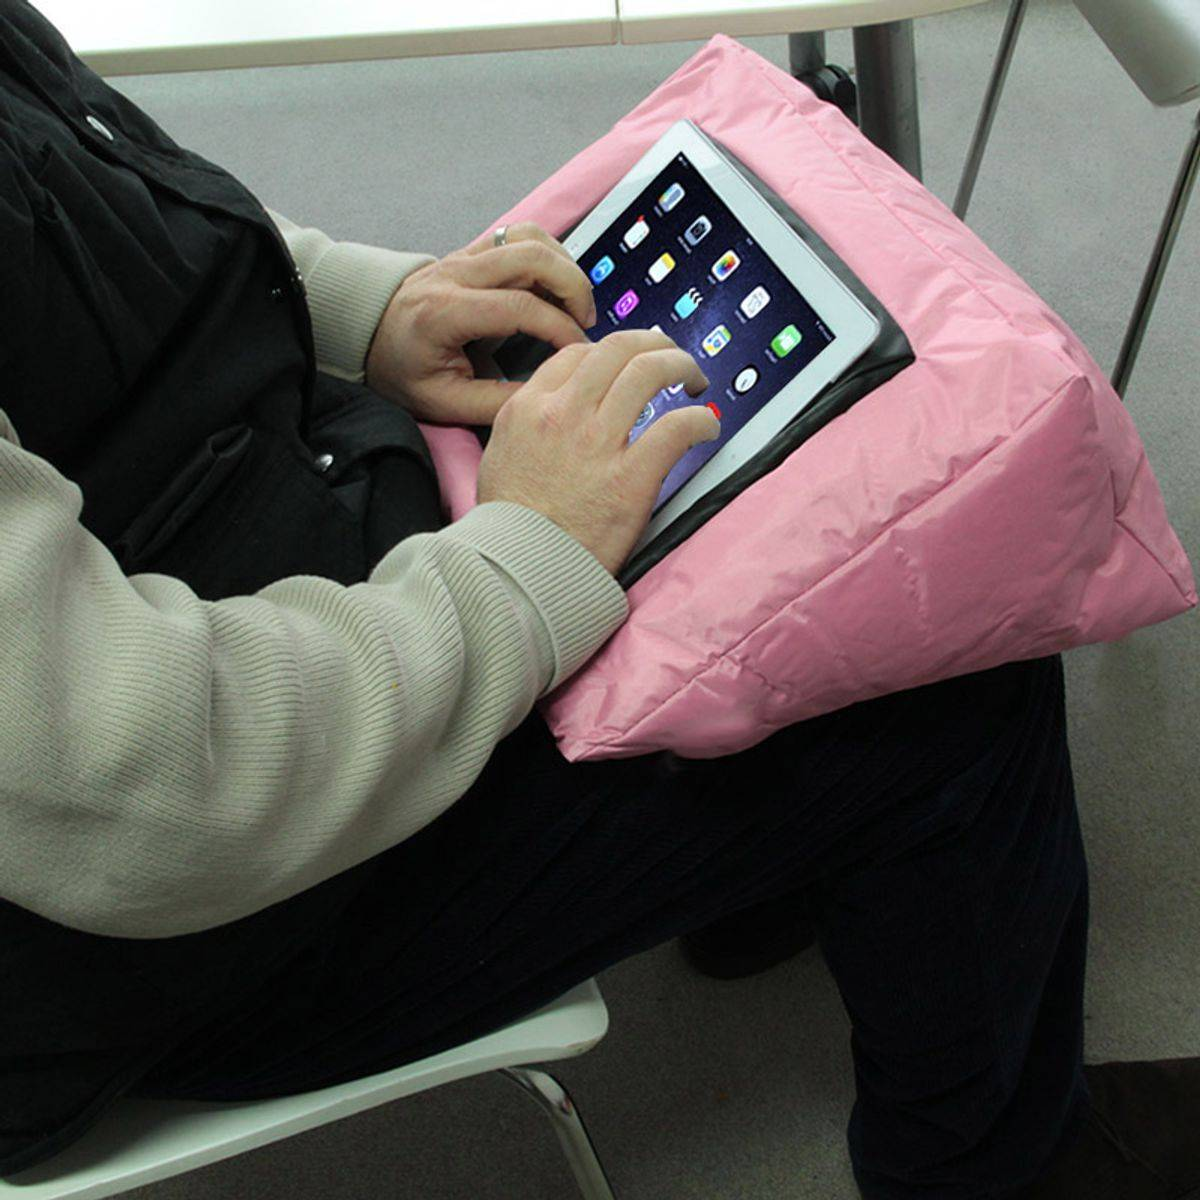 TheDecoFactory ANDROID - Coussin support pour tablette multifonction rose 38x38 Rose